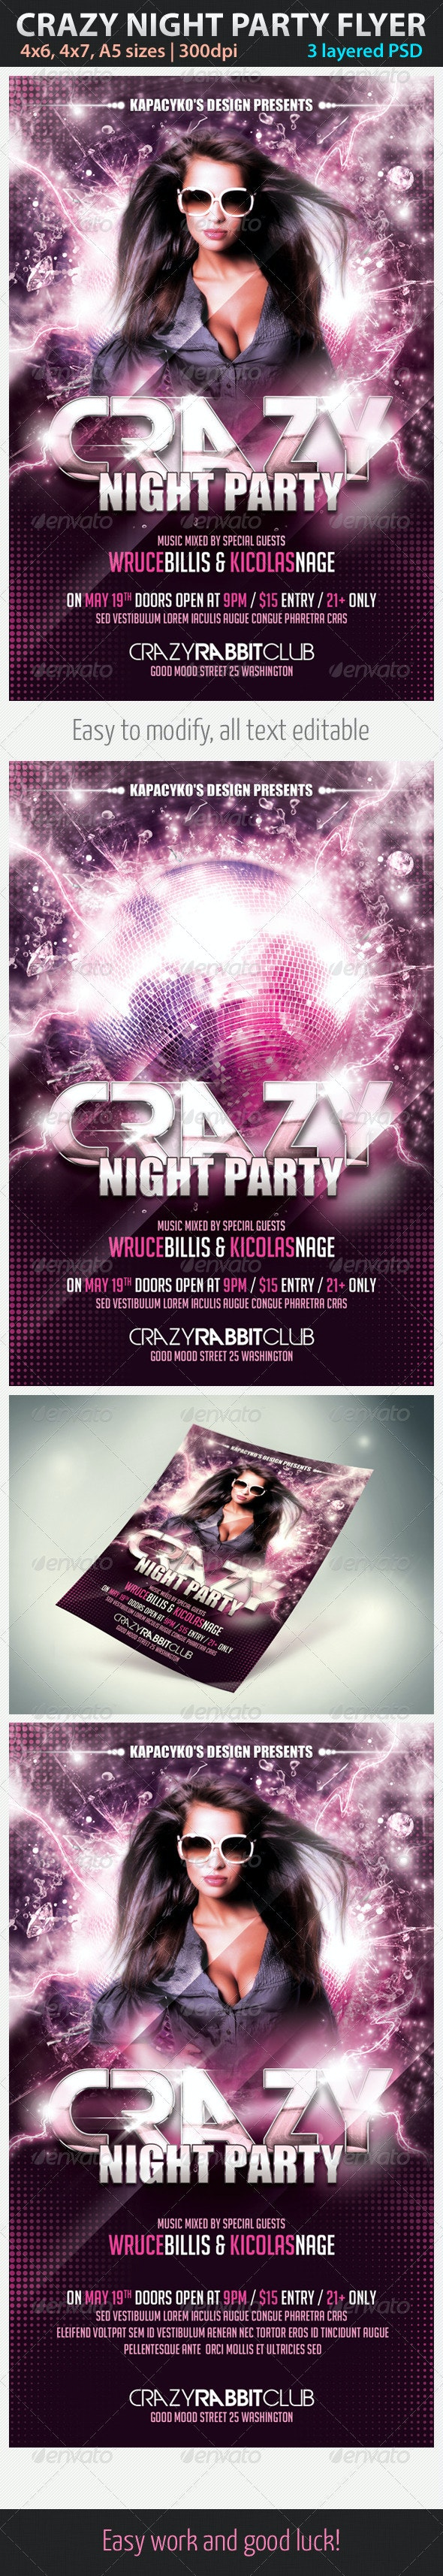 Crazy Night Party Flyer - Clubs & Parties Events